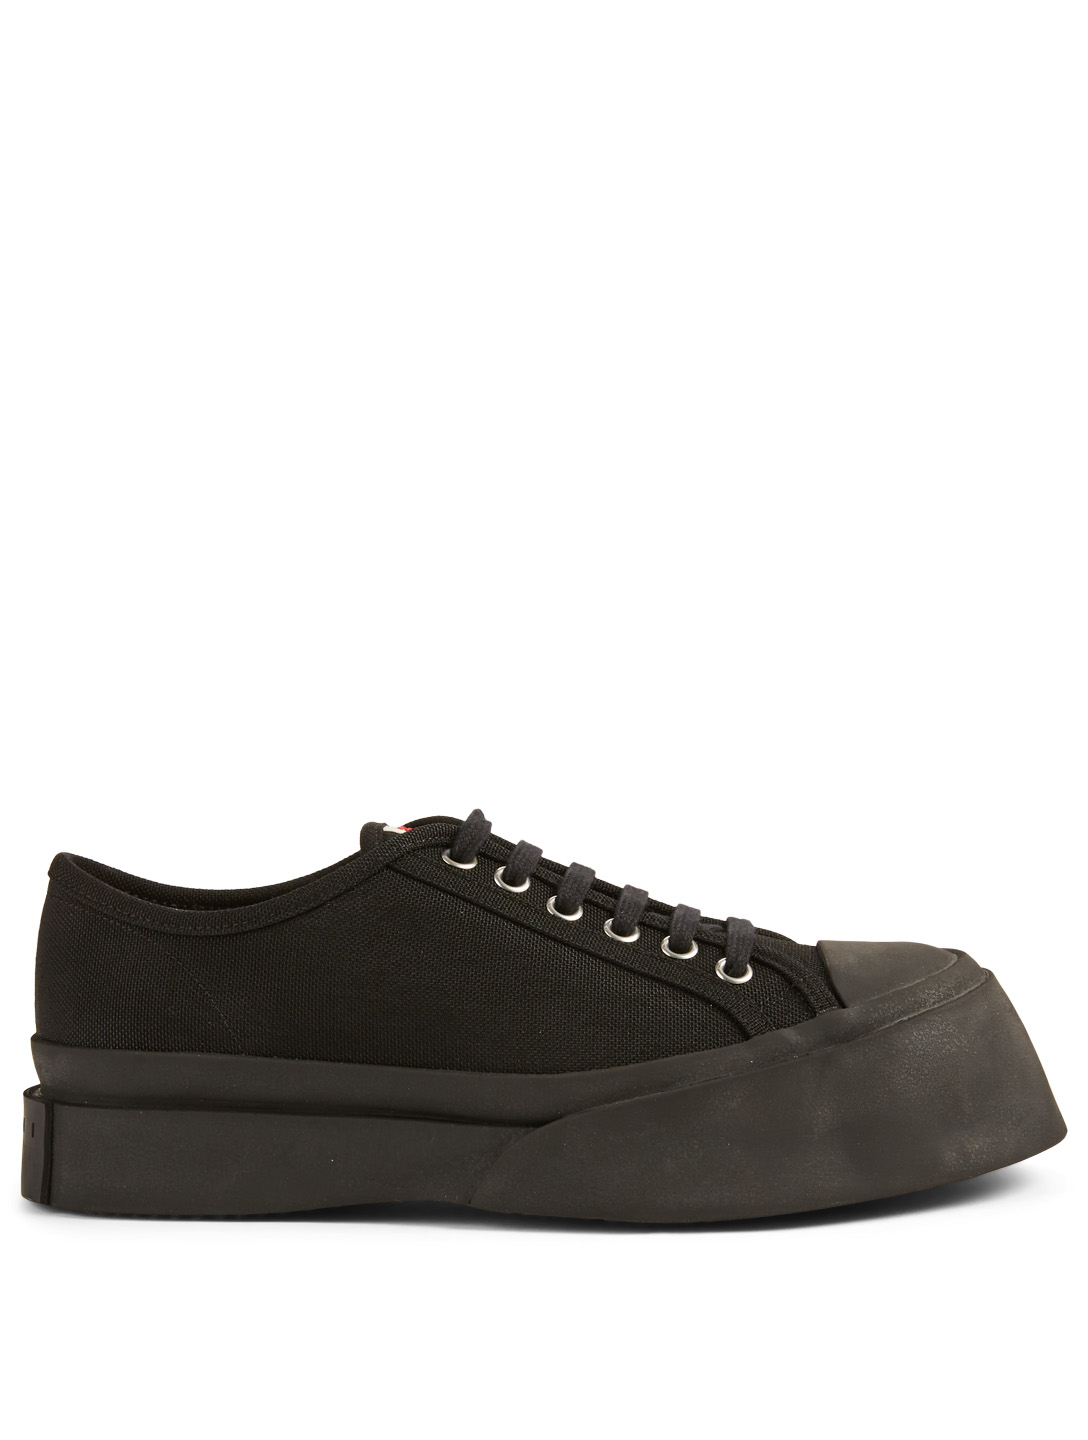 MARNI Canvas Platform Sneakers Womens Black